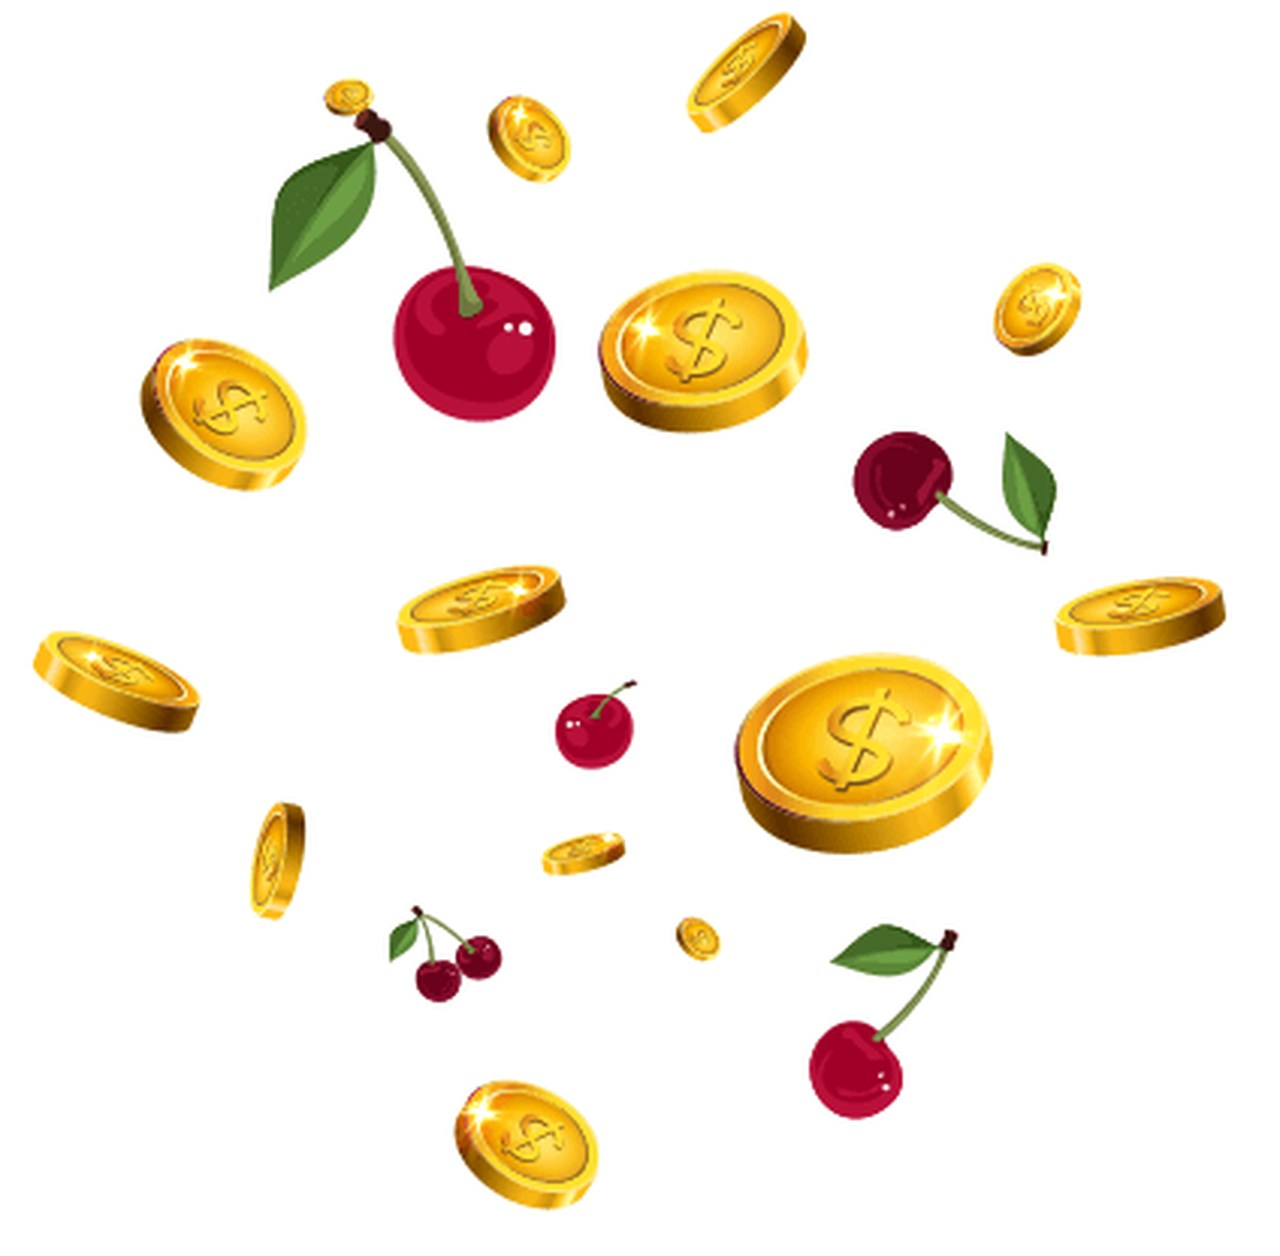 images with coins and cherries